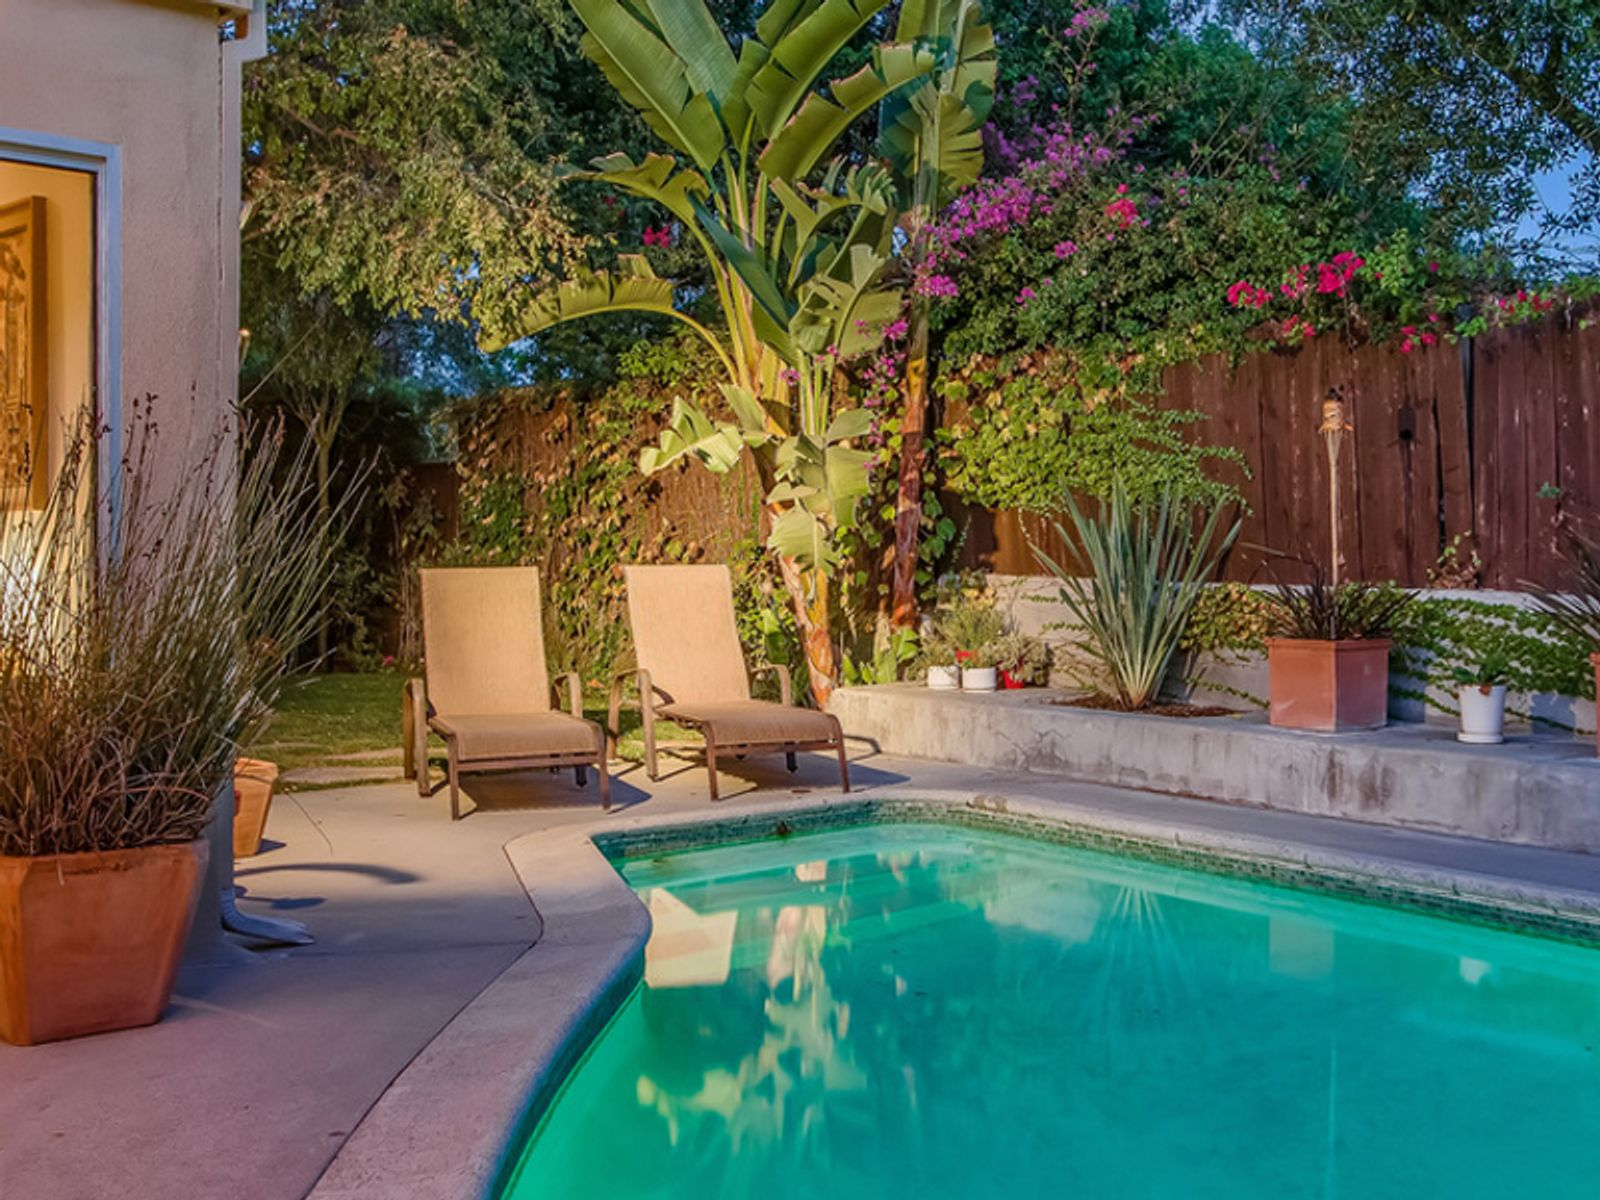 7706 Chandelle Place, Los Angeles CA Single Family Home - Los Angeles Real Estate